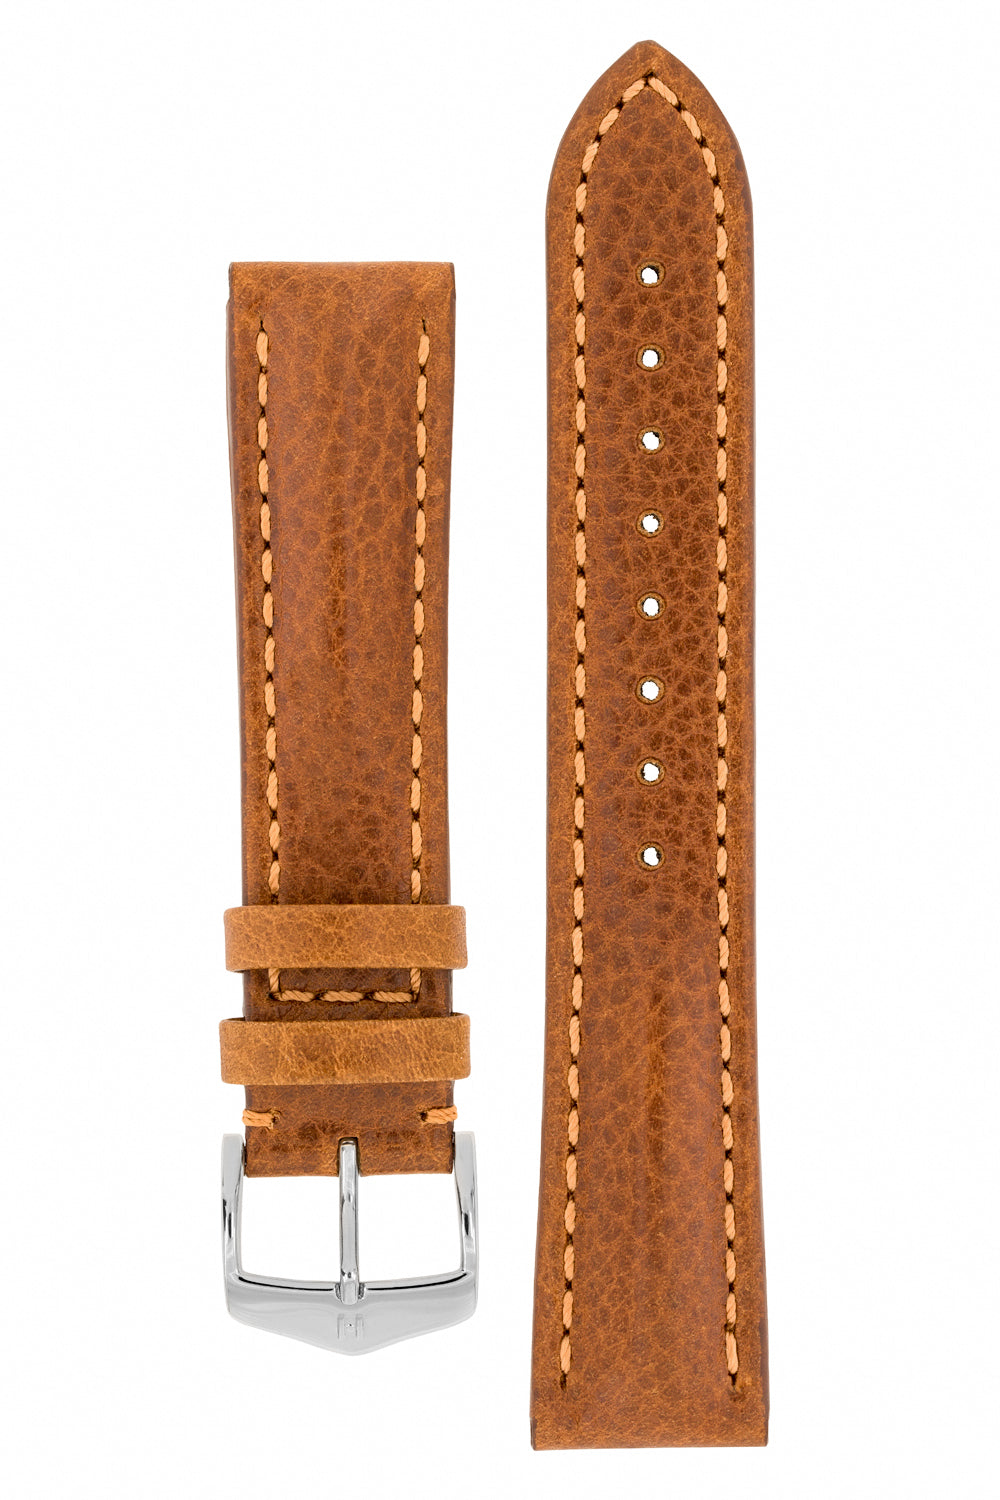 Hirsch LUCCA Tuscan Leather Watch Strap in GOLD BROWN